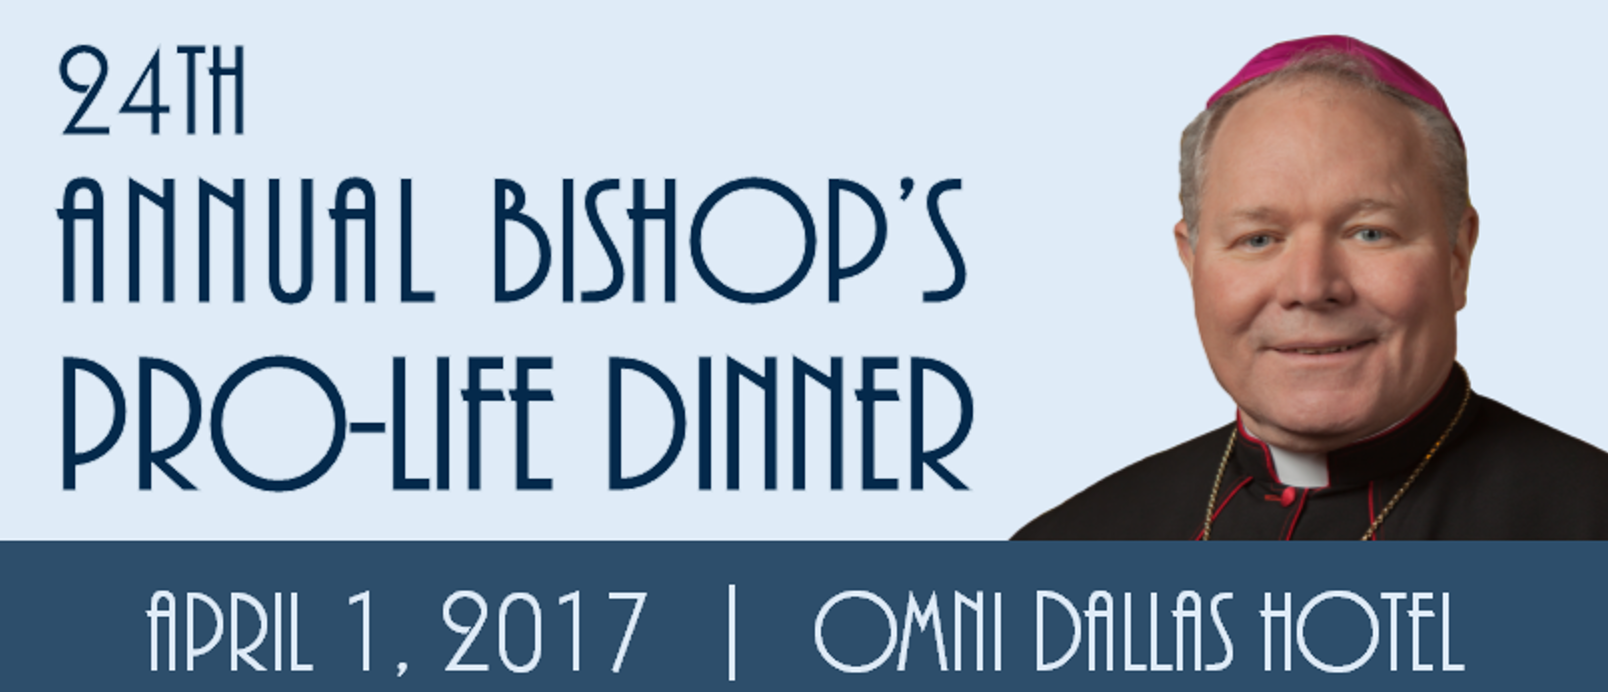 24th Annual Bishop's Pro-Life Dinner